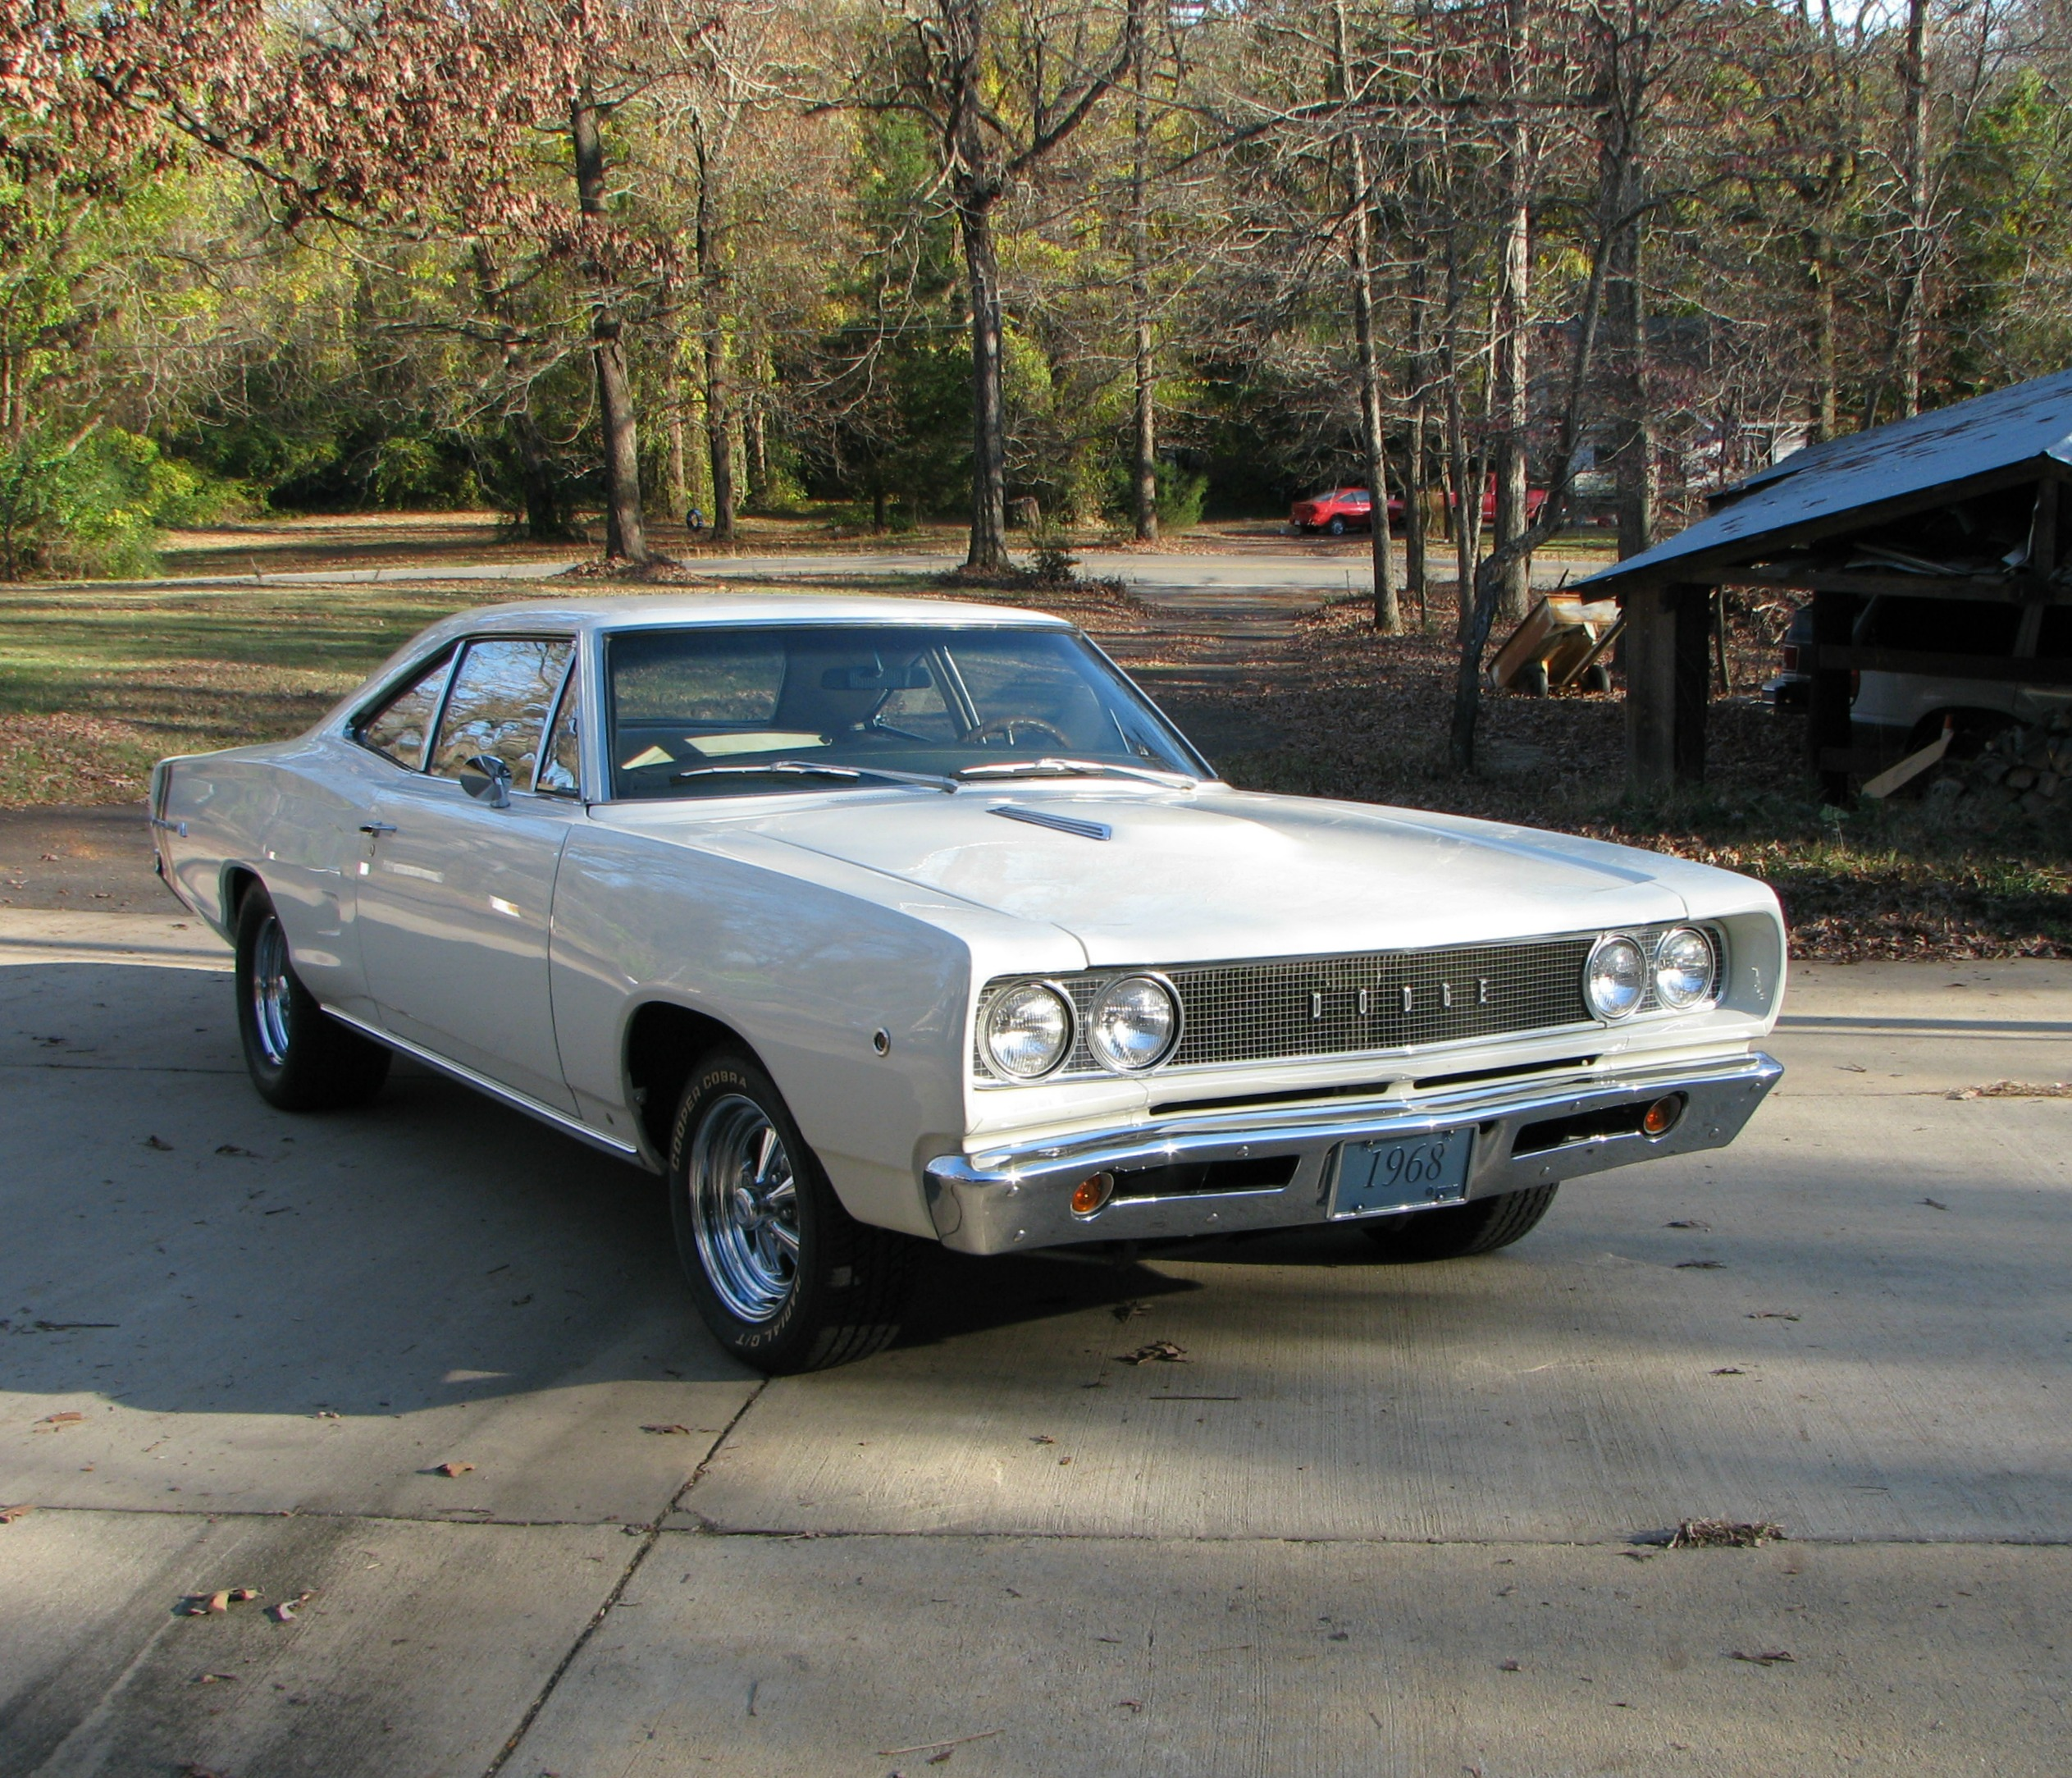 The R/T Garage Project Gallery - Mopar Restoration and Performance Services in Belle Plaine, MN